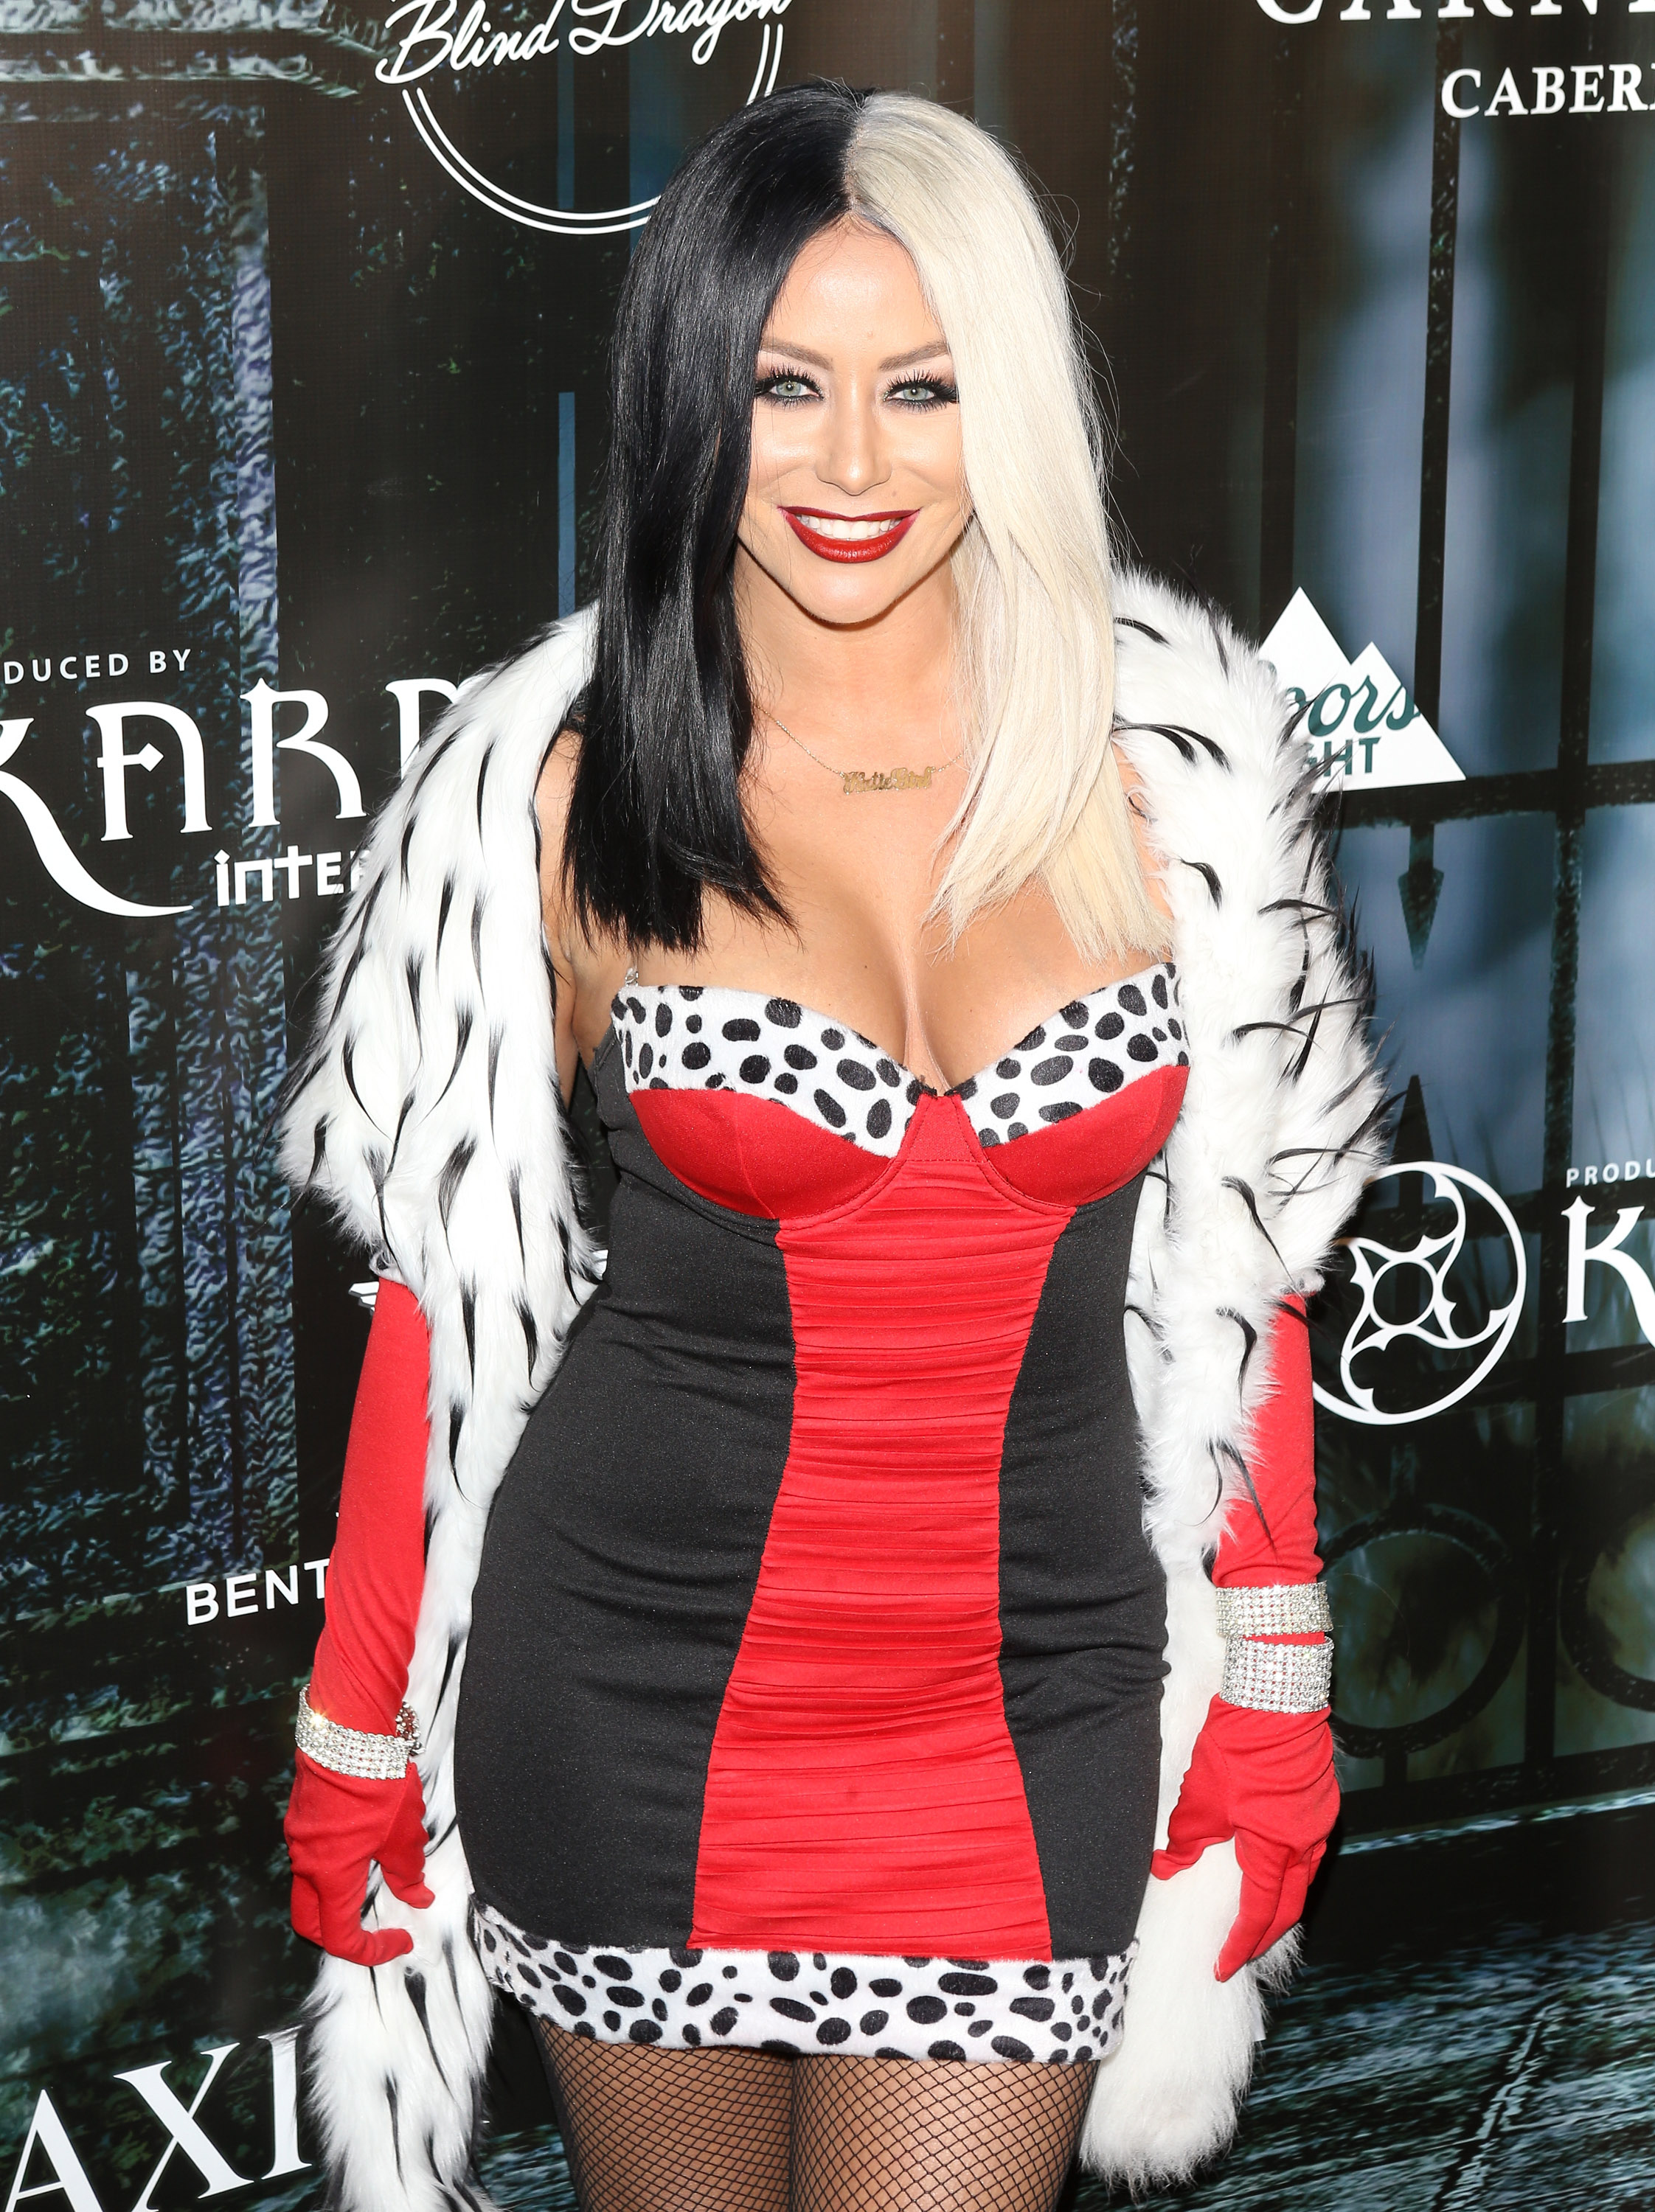 aubrey o 39 day as cruella de vil all the celebrity. Black Bedroom Furniture Sets. Home Design Ideas